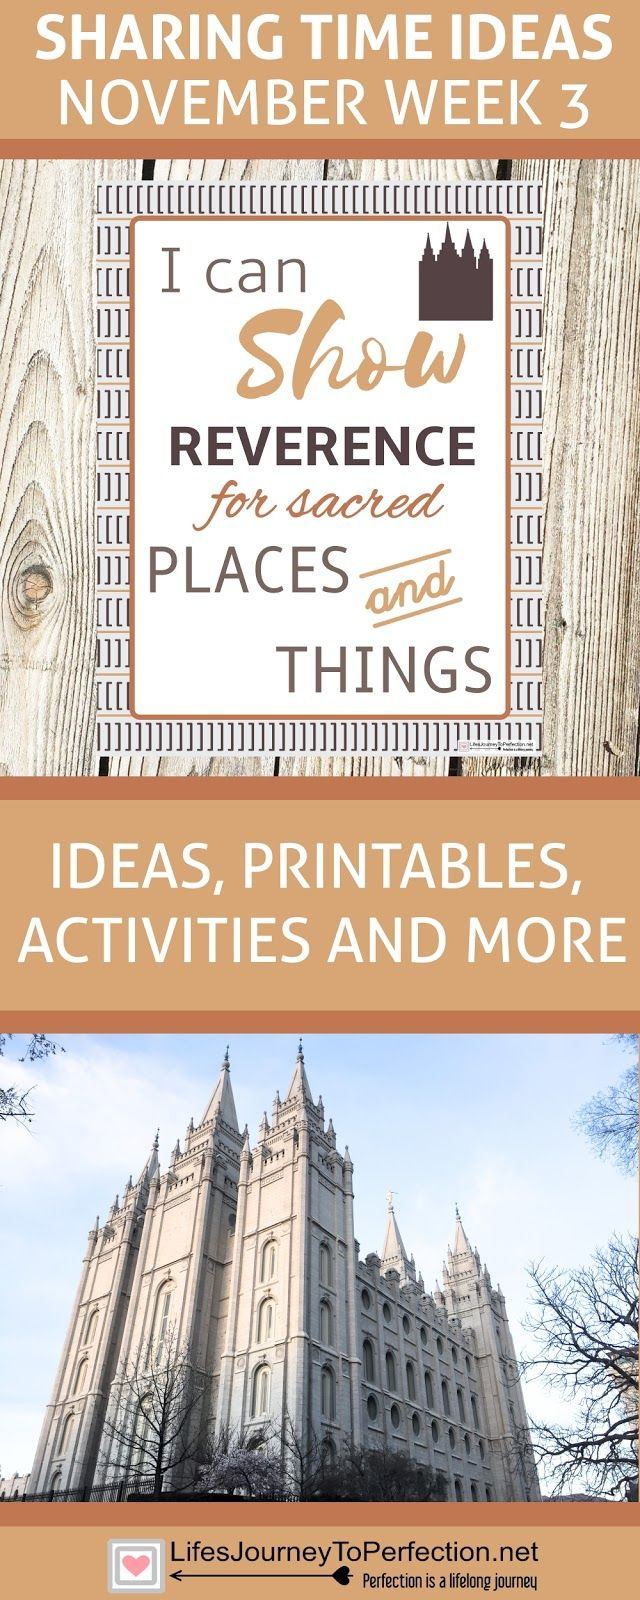 SHARING TIME IDEAS FOR NOVEMBER WEEK 3: I CAN SHOW REVERENCE FOR SACRED PLACES AND THINGS. LDS PRIMARY ACTIVITIES AND PRINTABLES